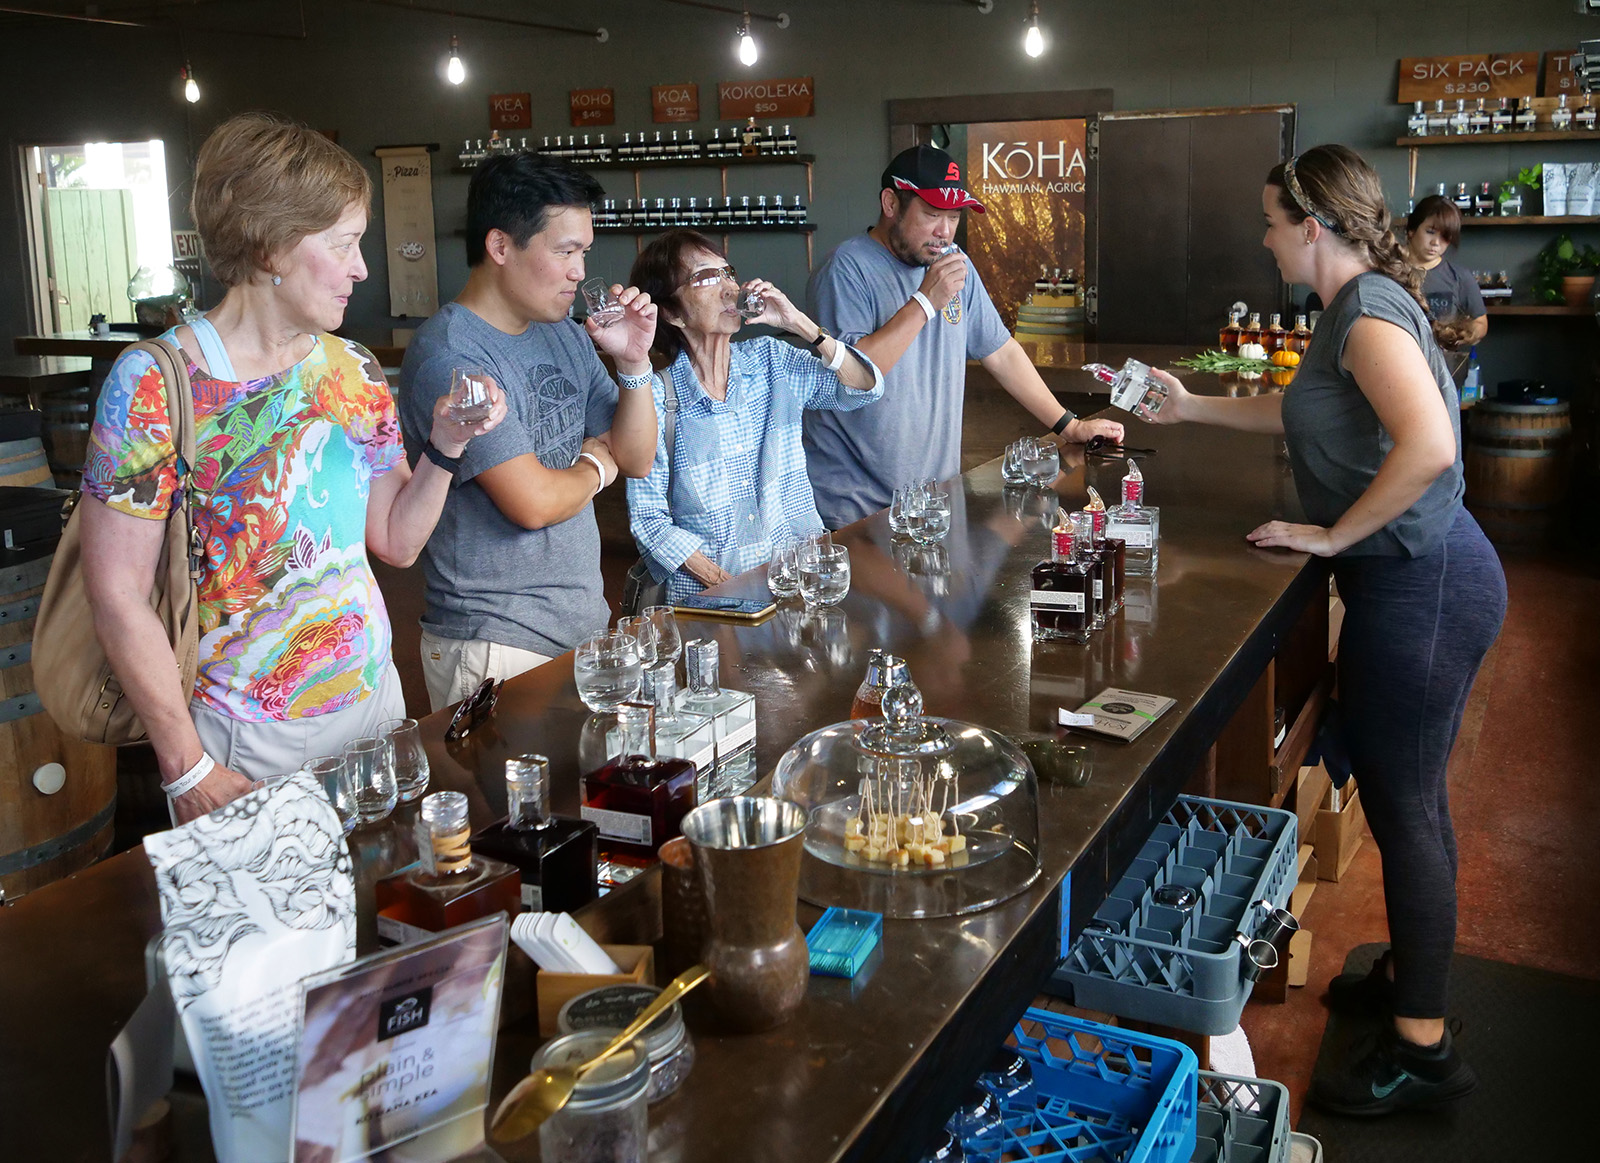 <p>Visitors sample four different varieties of rum produced at Ko Hana.</p>